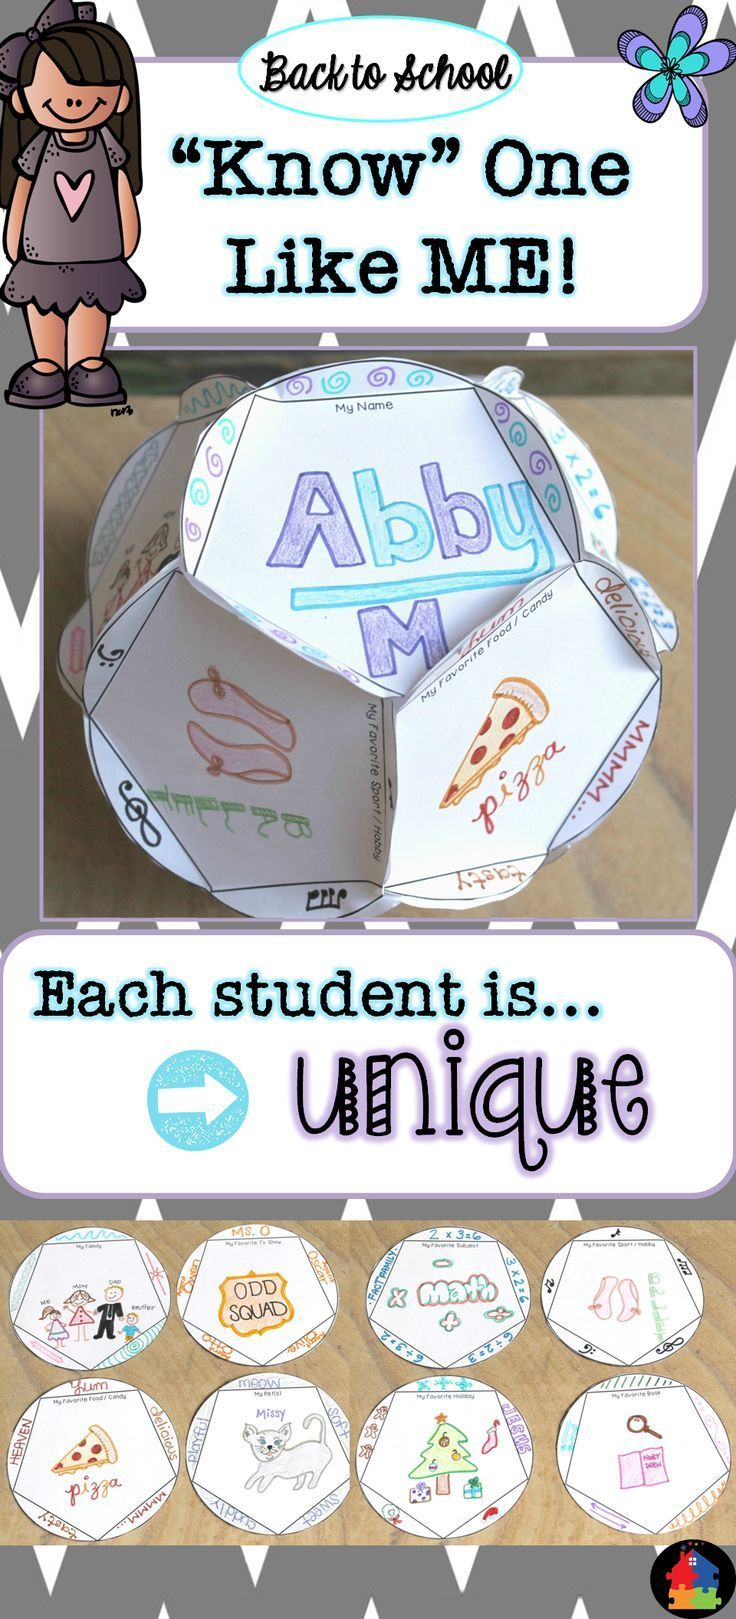 "This fun Back to School project not only allows you to get to know your students, but also allows them to get to know each other! Your kiddos will have a blast as they watch their dodecahedron take ""shape"". The main message through this activity is that there is ""Know"" One Like Me, because we are all very unique. Be sure to encourage them to embrace and appreciate their differences in one another."